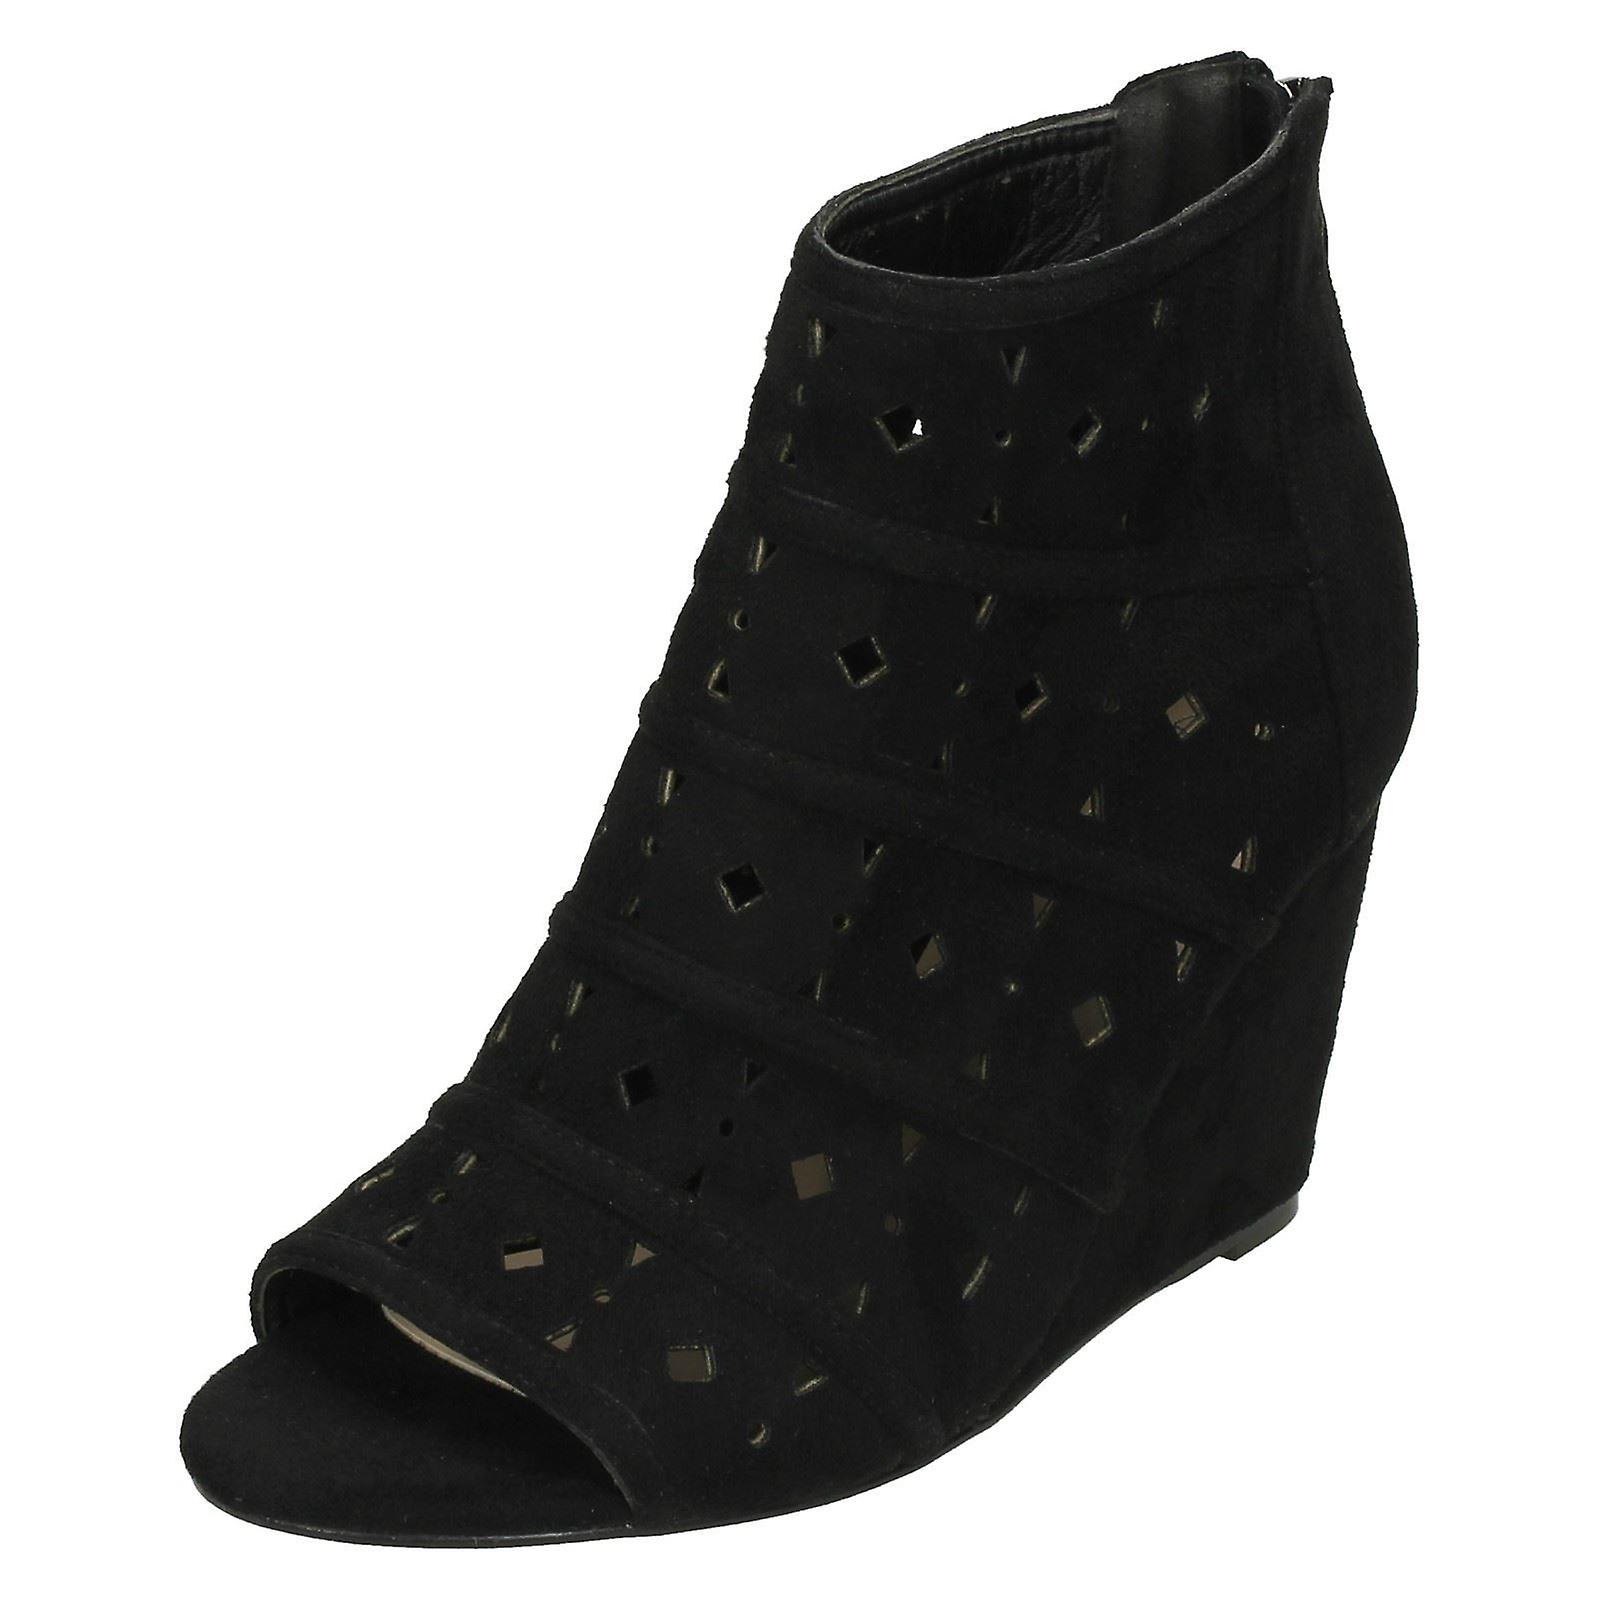 Ladies Spot On High Wedge Peeptoe Ankle Boots F10725